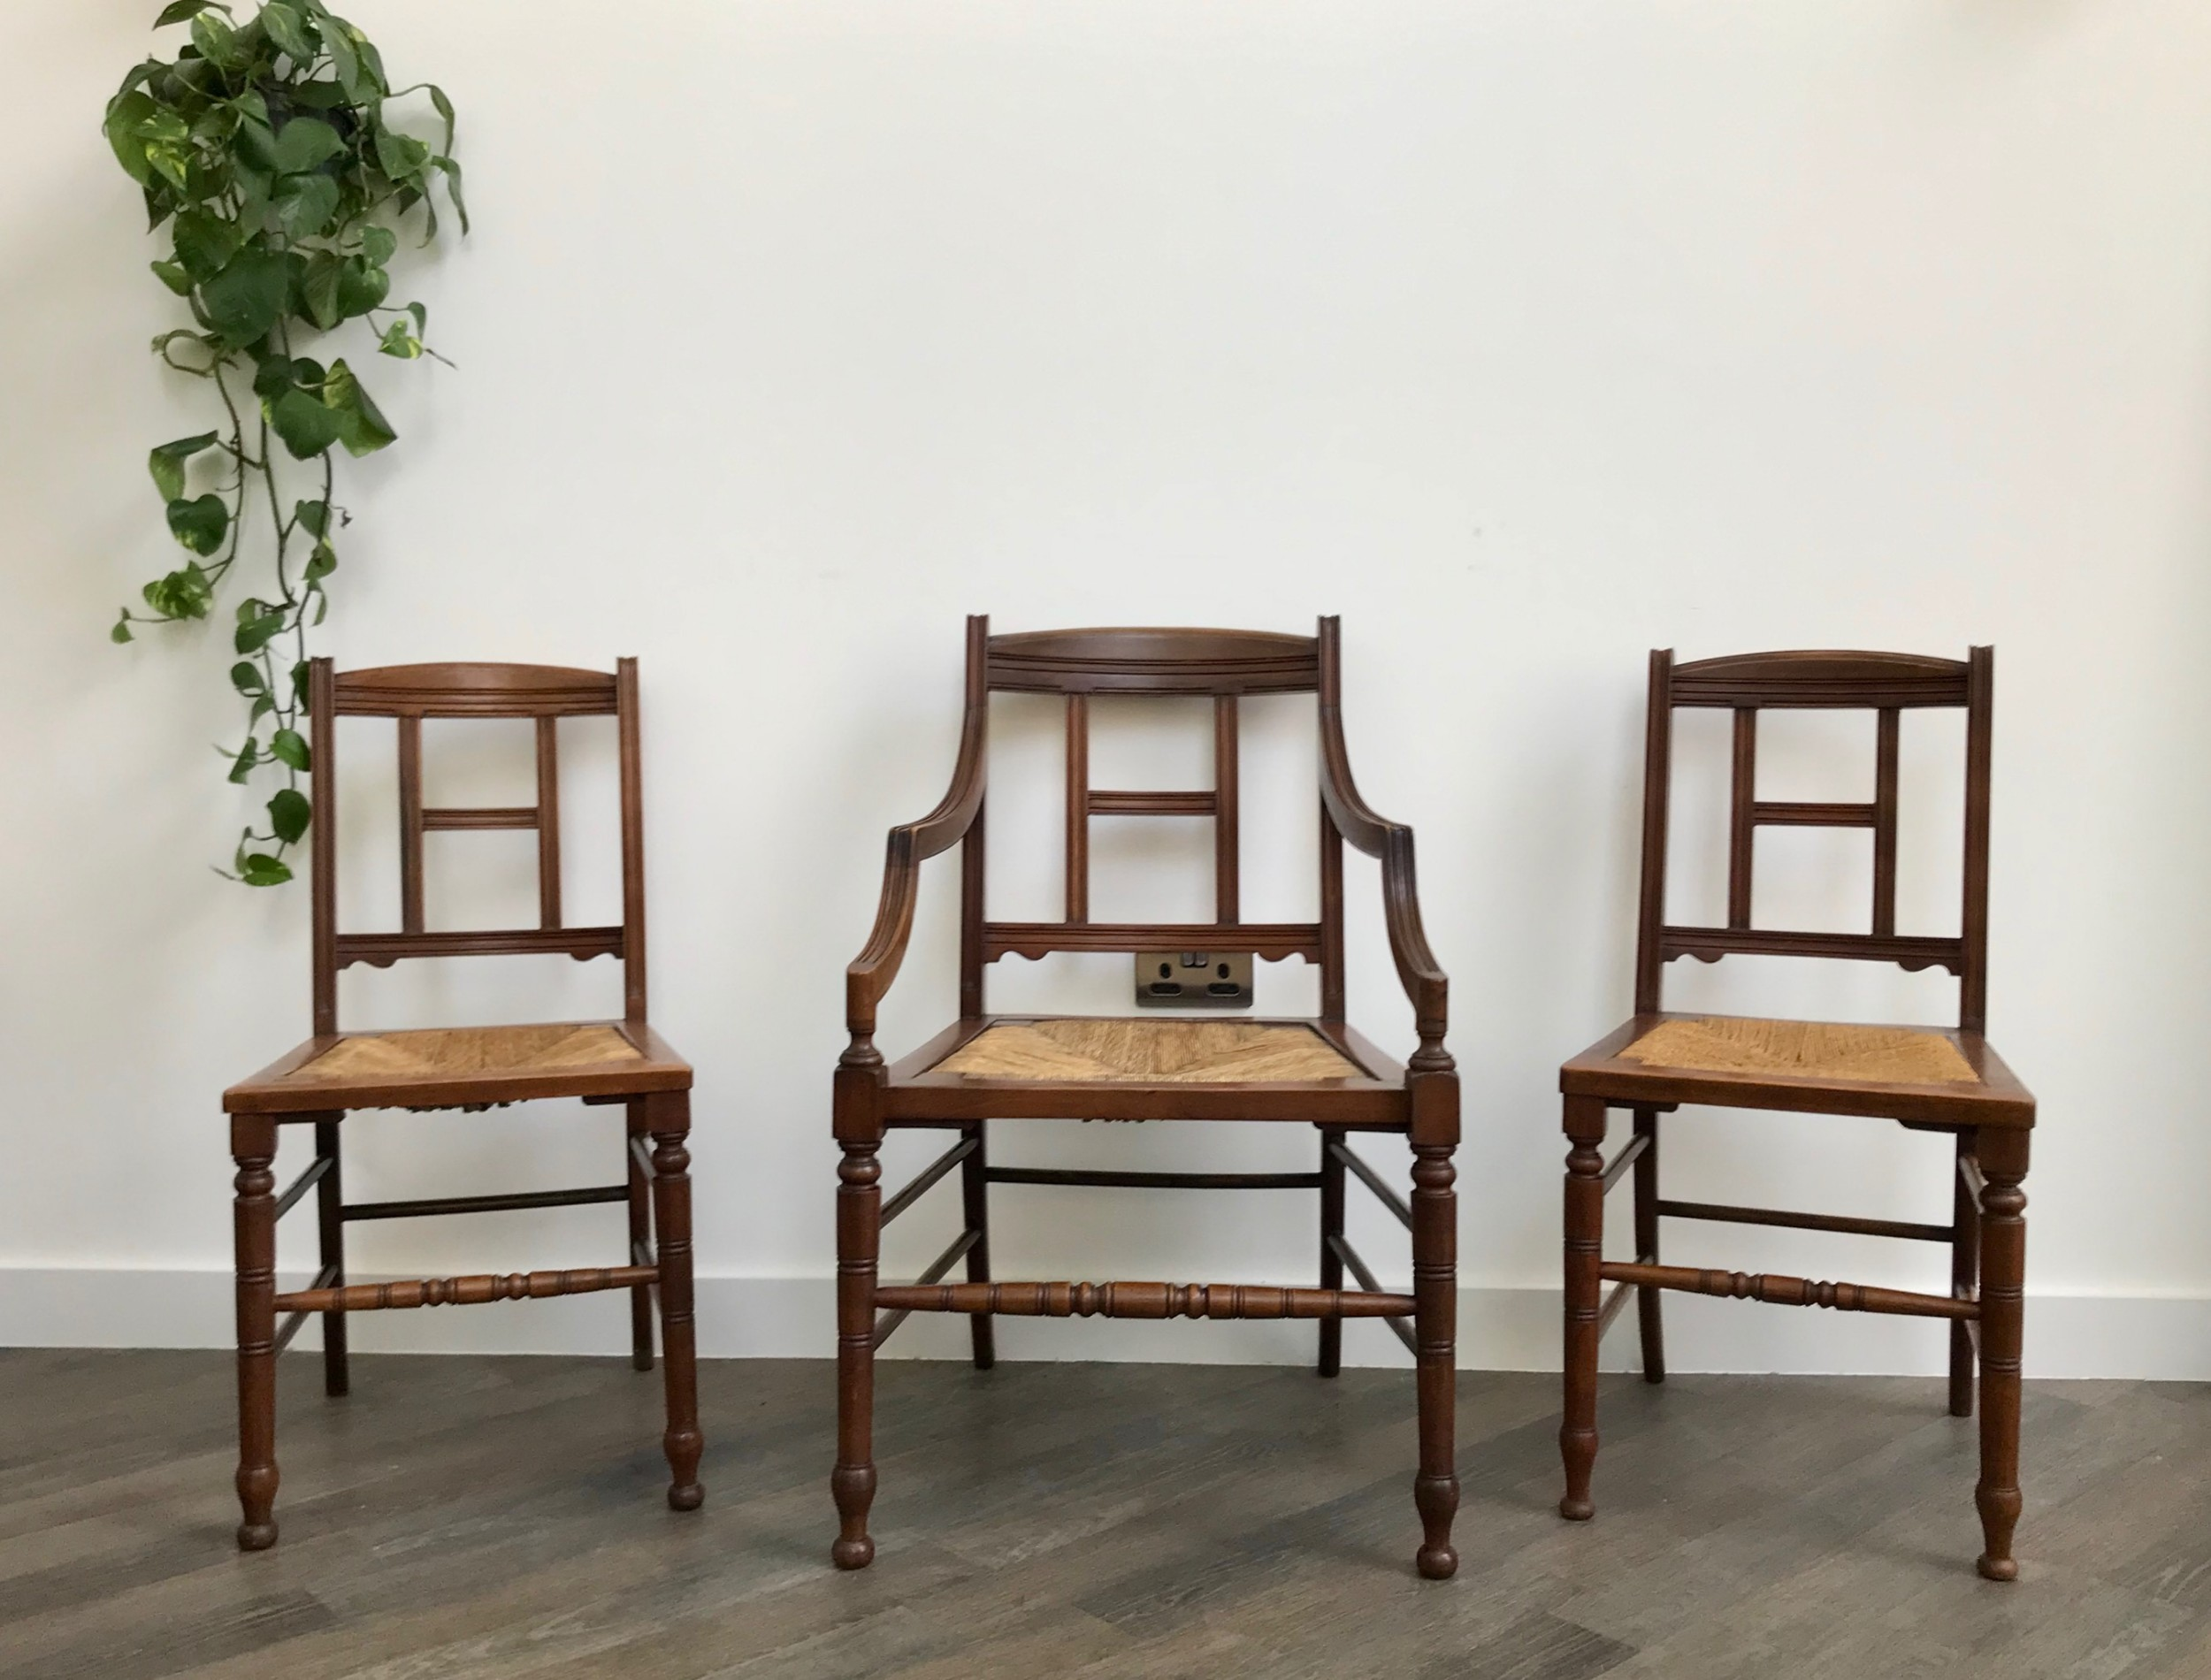 a set of late 19th century walnut chairs with rush seats one carver armchair and two occasional chairs late victorian furniture with lovely colouring